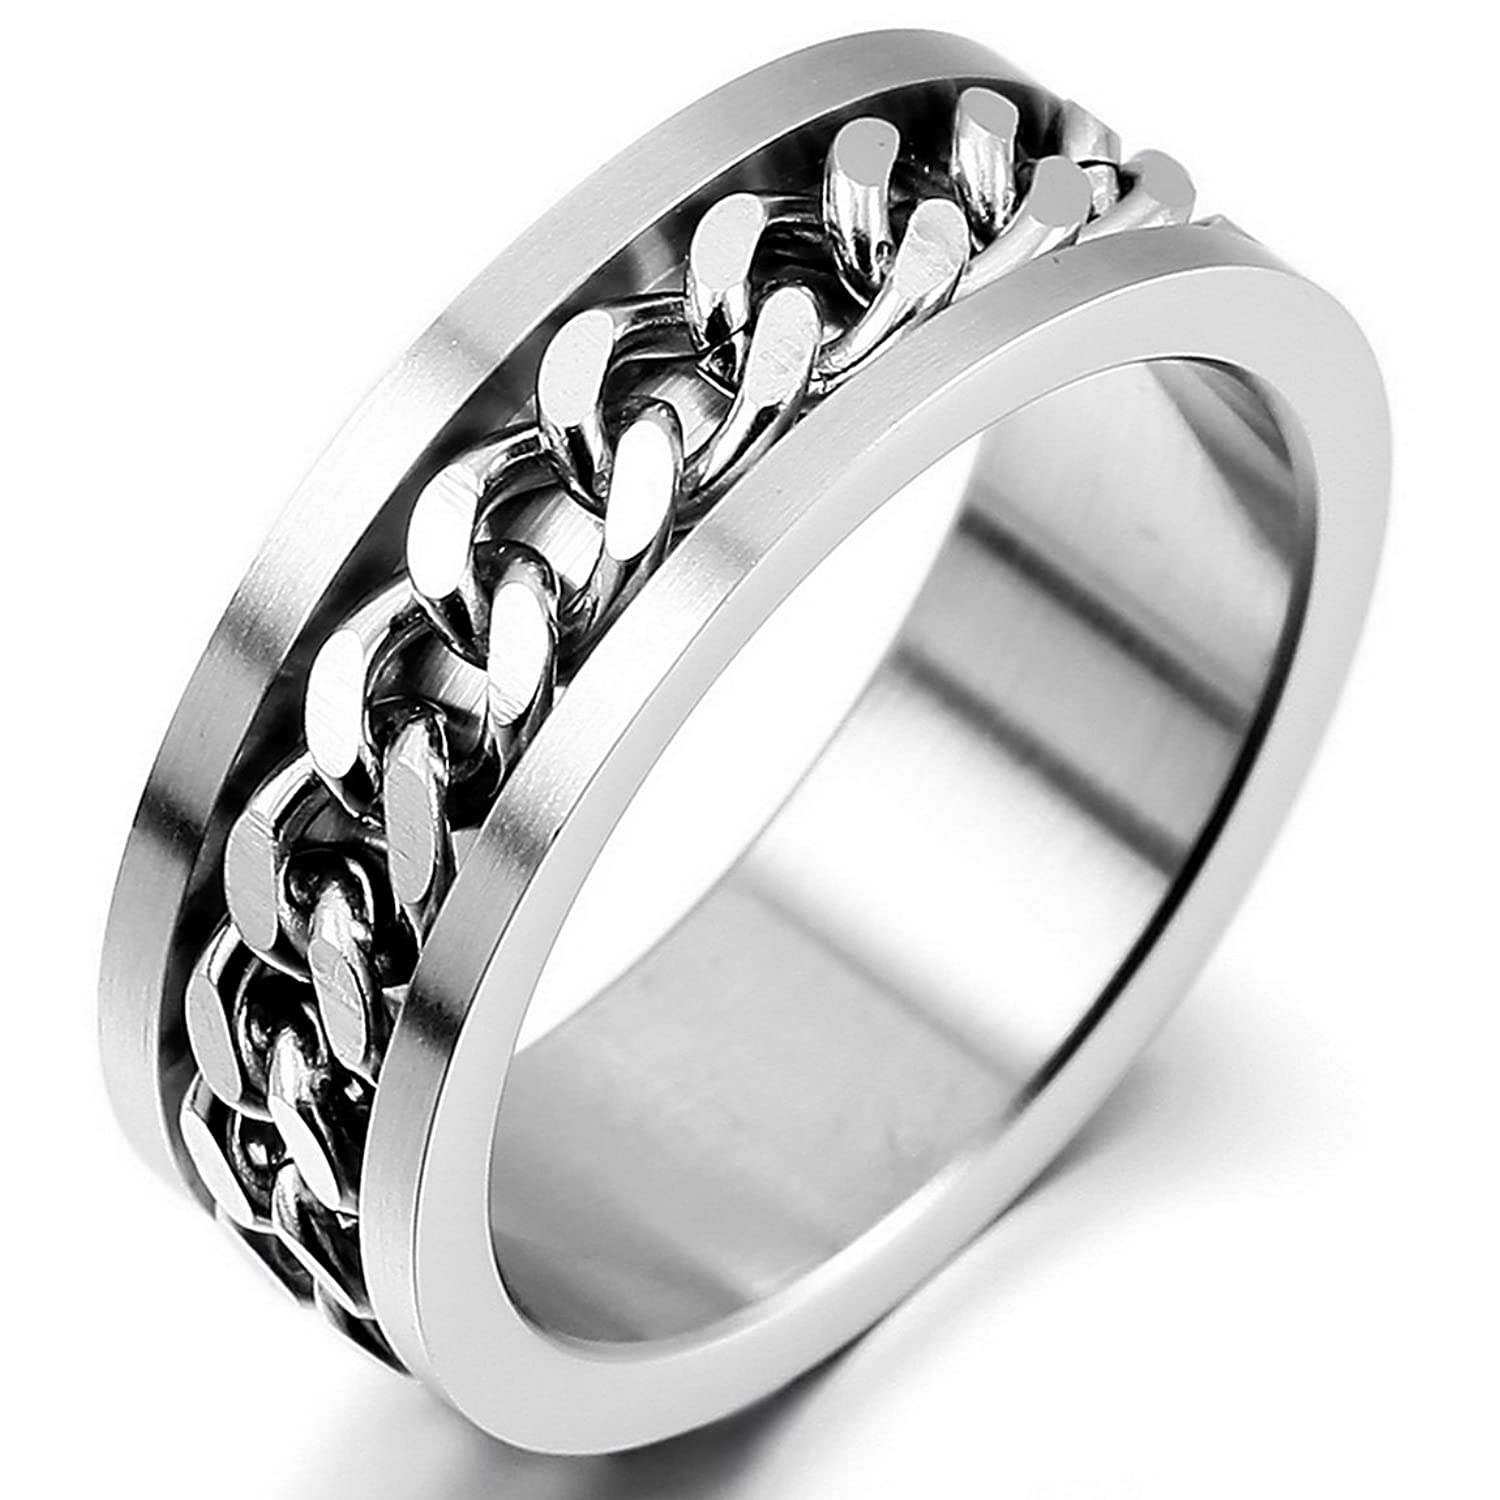 sets ideas bands banddding men rings customnds of banded inspirations for band ducknd mens sapphire ring new idea womens bandedding beautiful wedding tungsten black dreaded duck